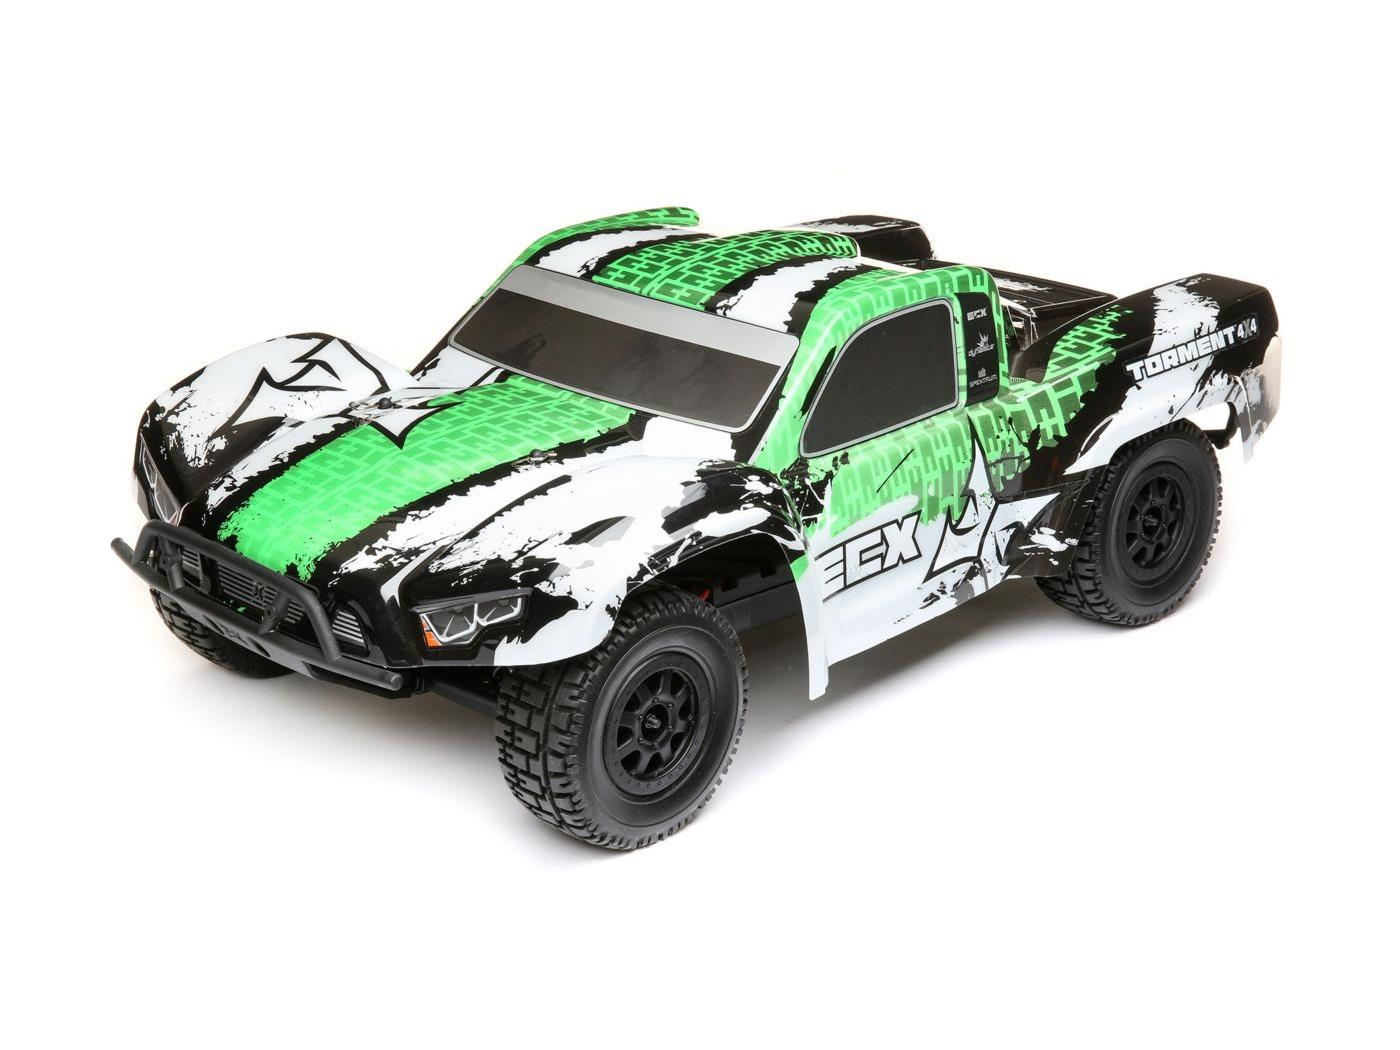 ECX 1/10 4WD Torment Brushed White/Green RTR ECX03243T2